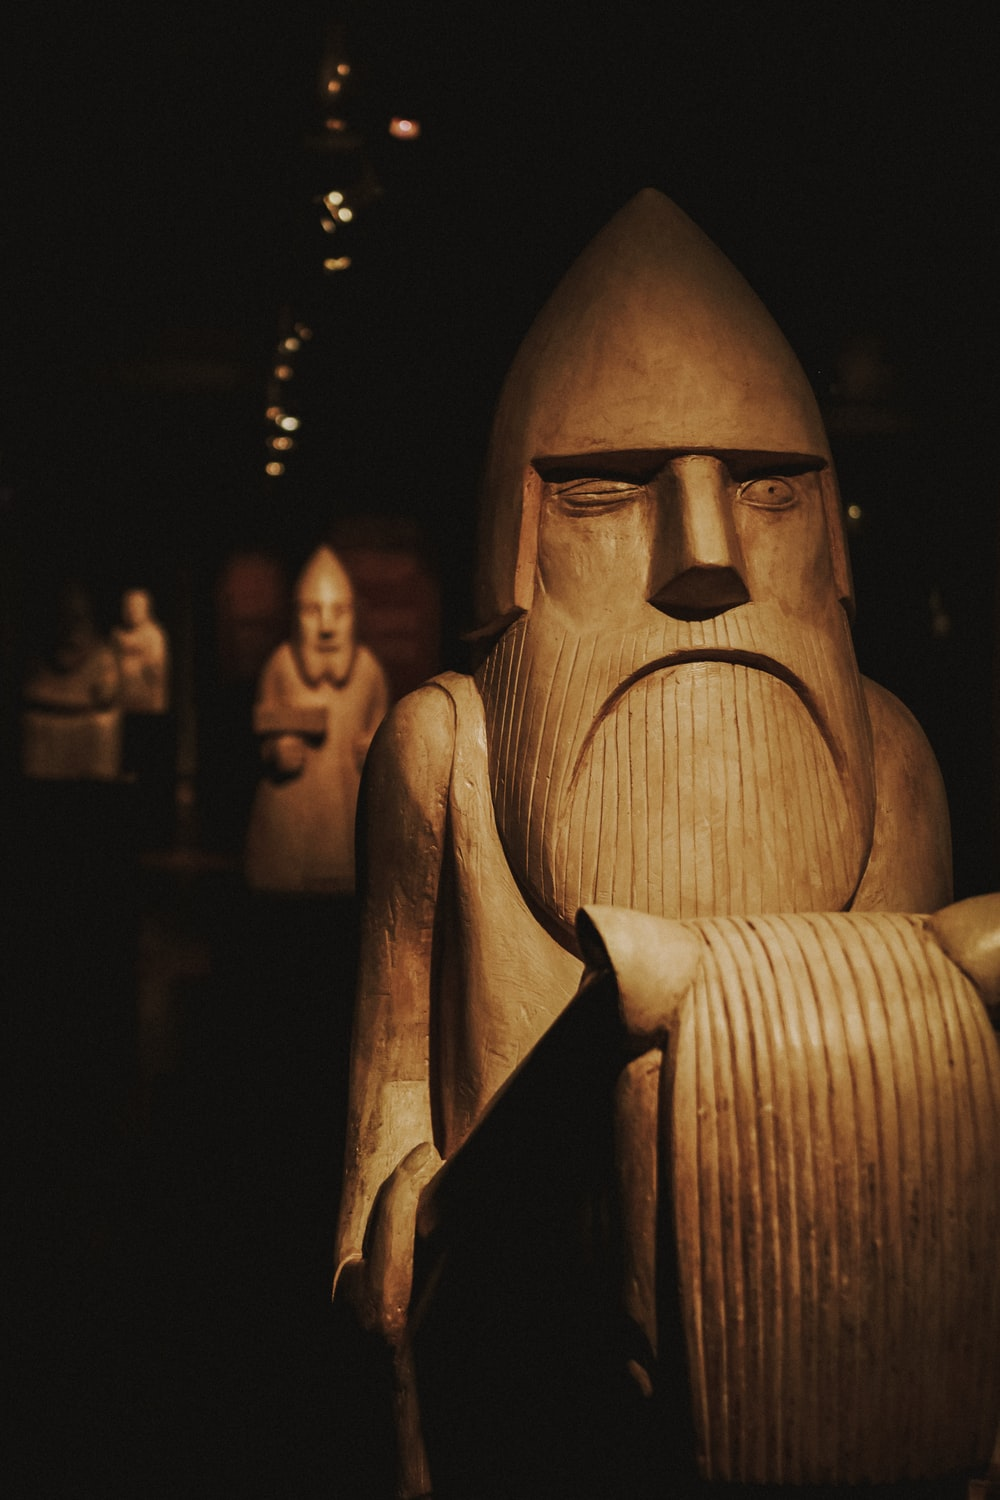 closeup photo of brown wooden statue